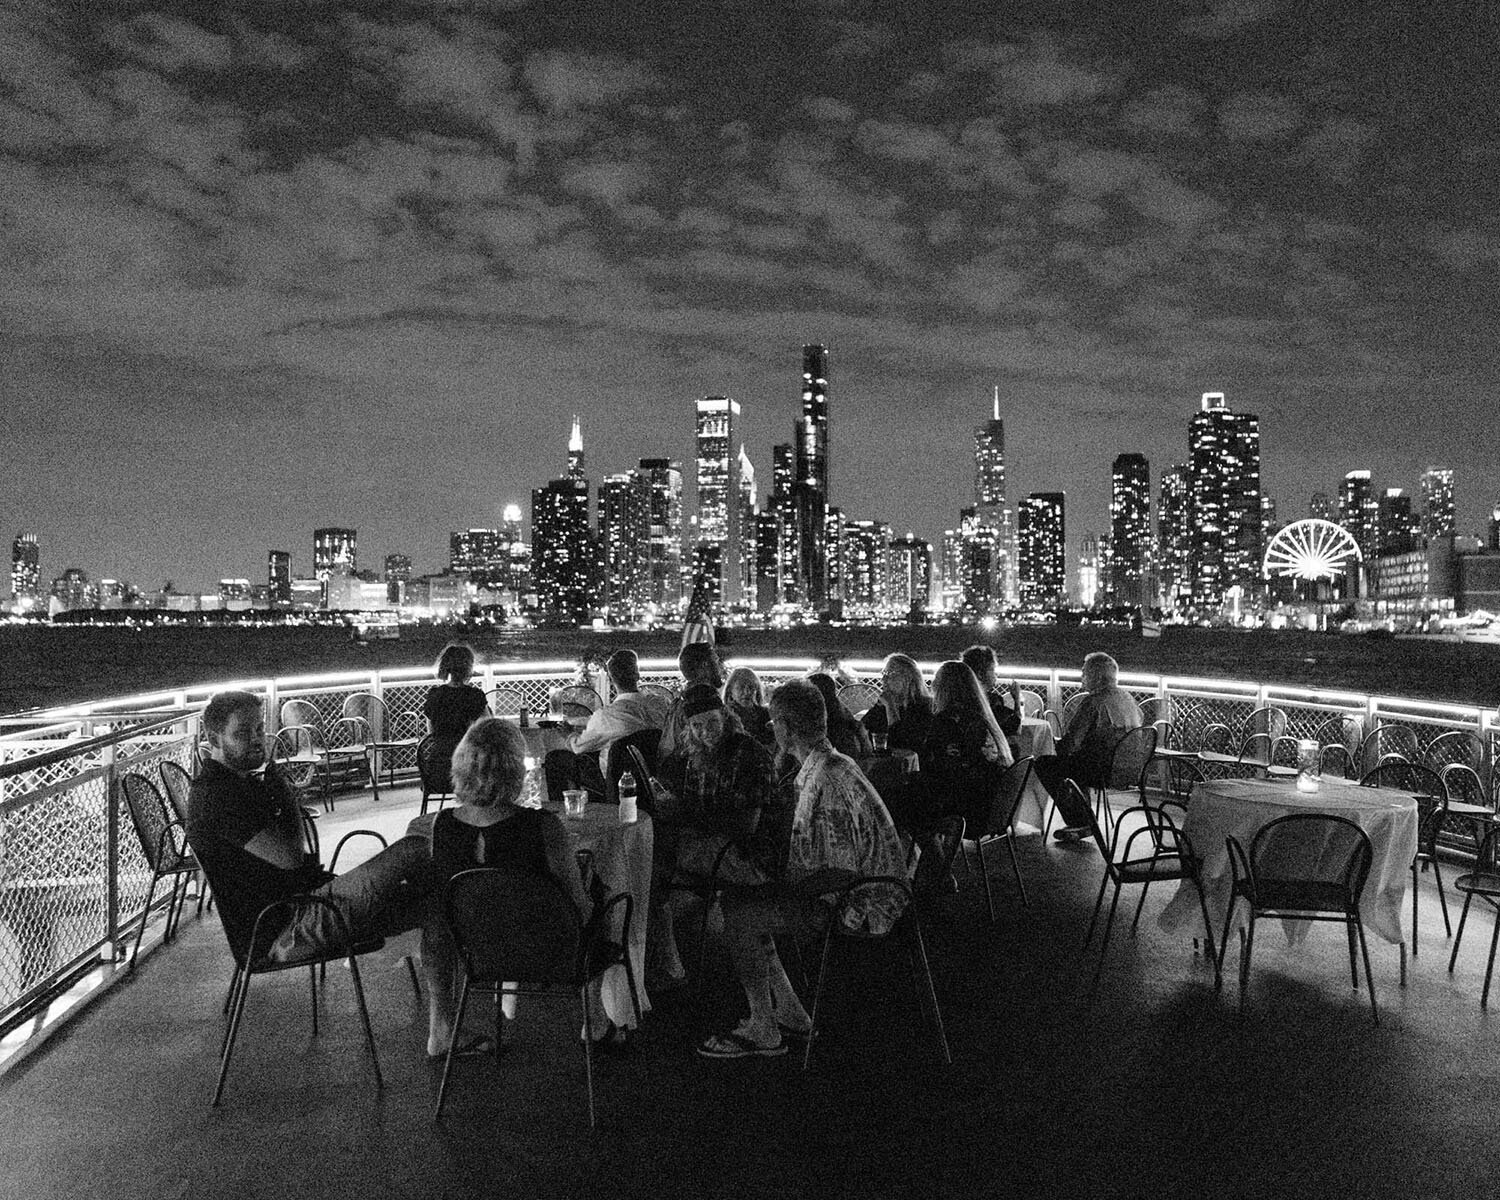 wedding-guests-on-boat-chicago-skyline.jpg